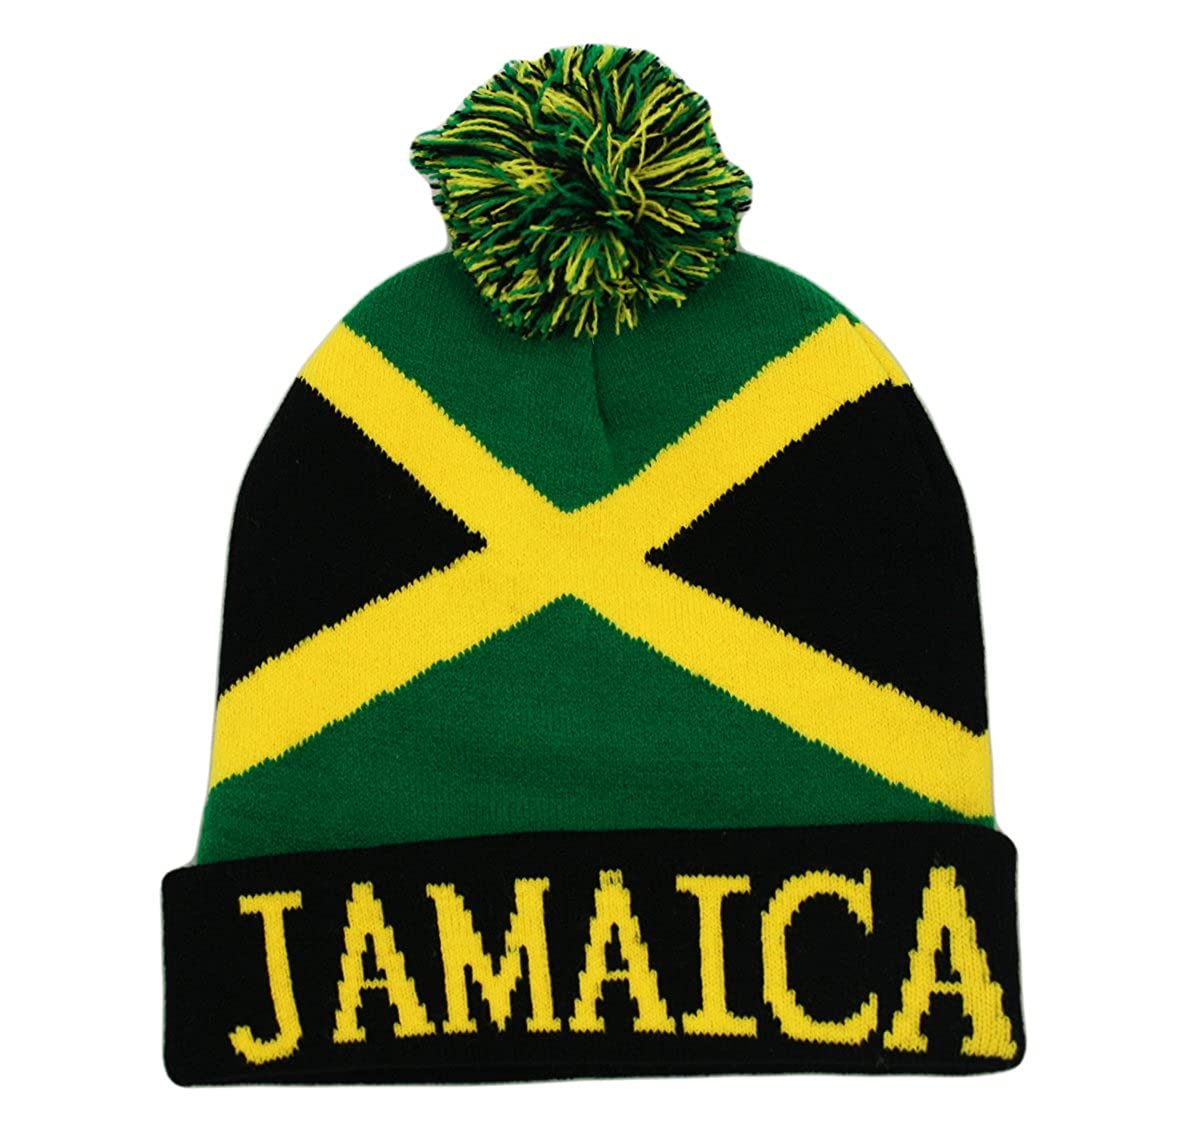 5e6c3419990 Itzu Bobble Beanie Knit Winter Hat Jamaica Rasta in Black Yellow and Green  at Amazon Men s Clothing store